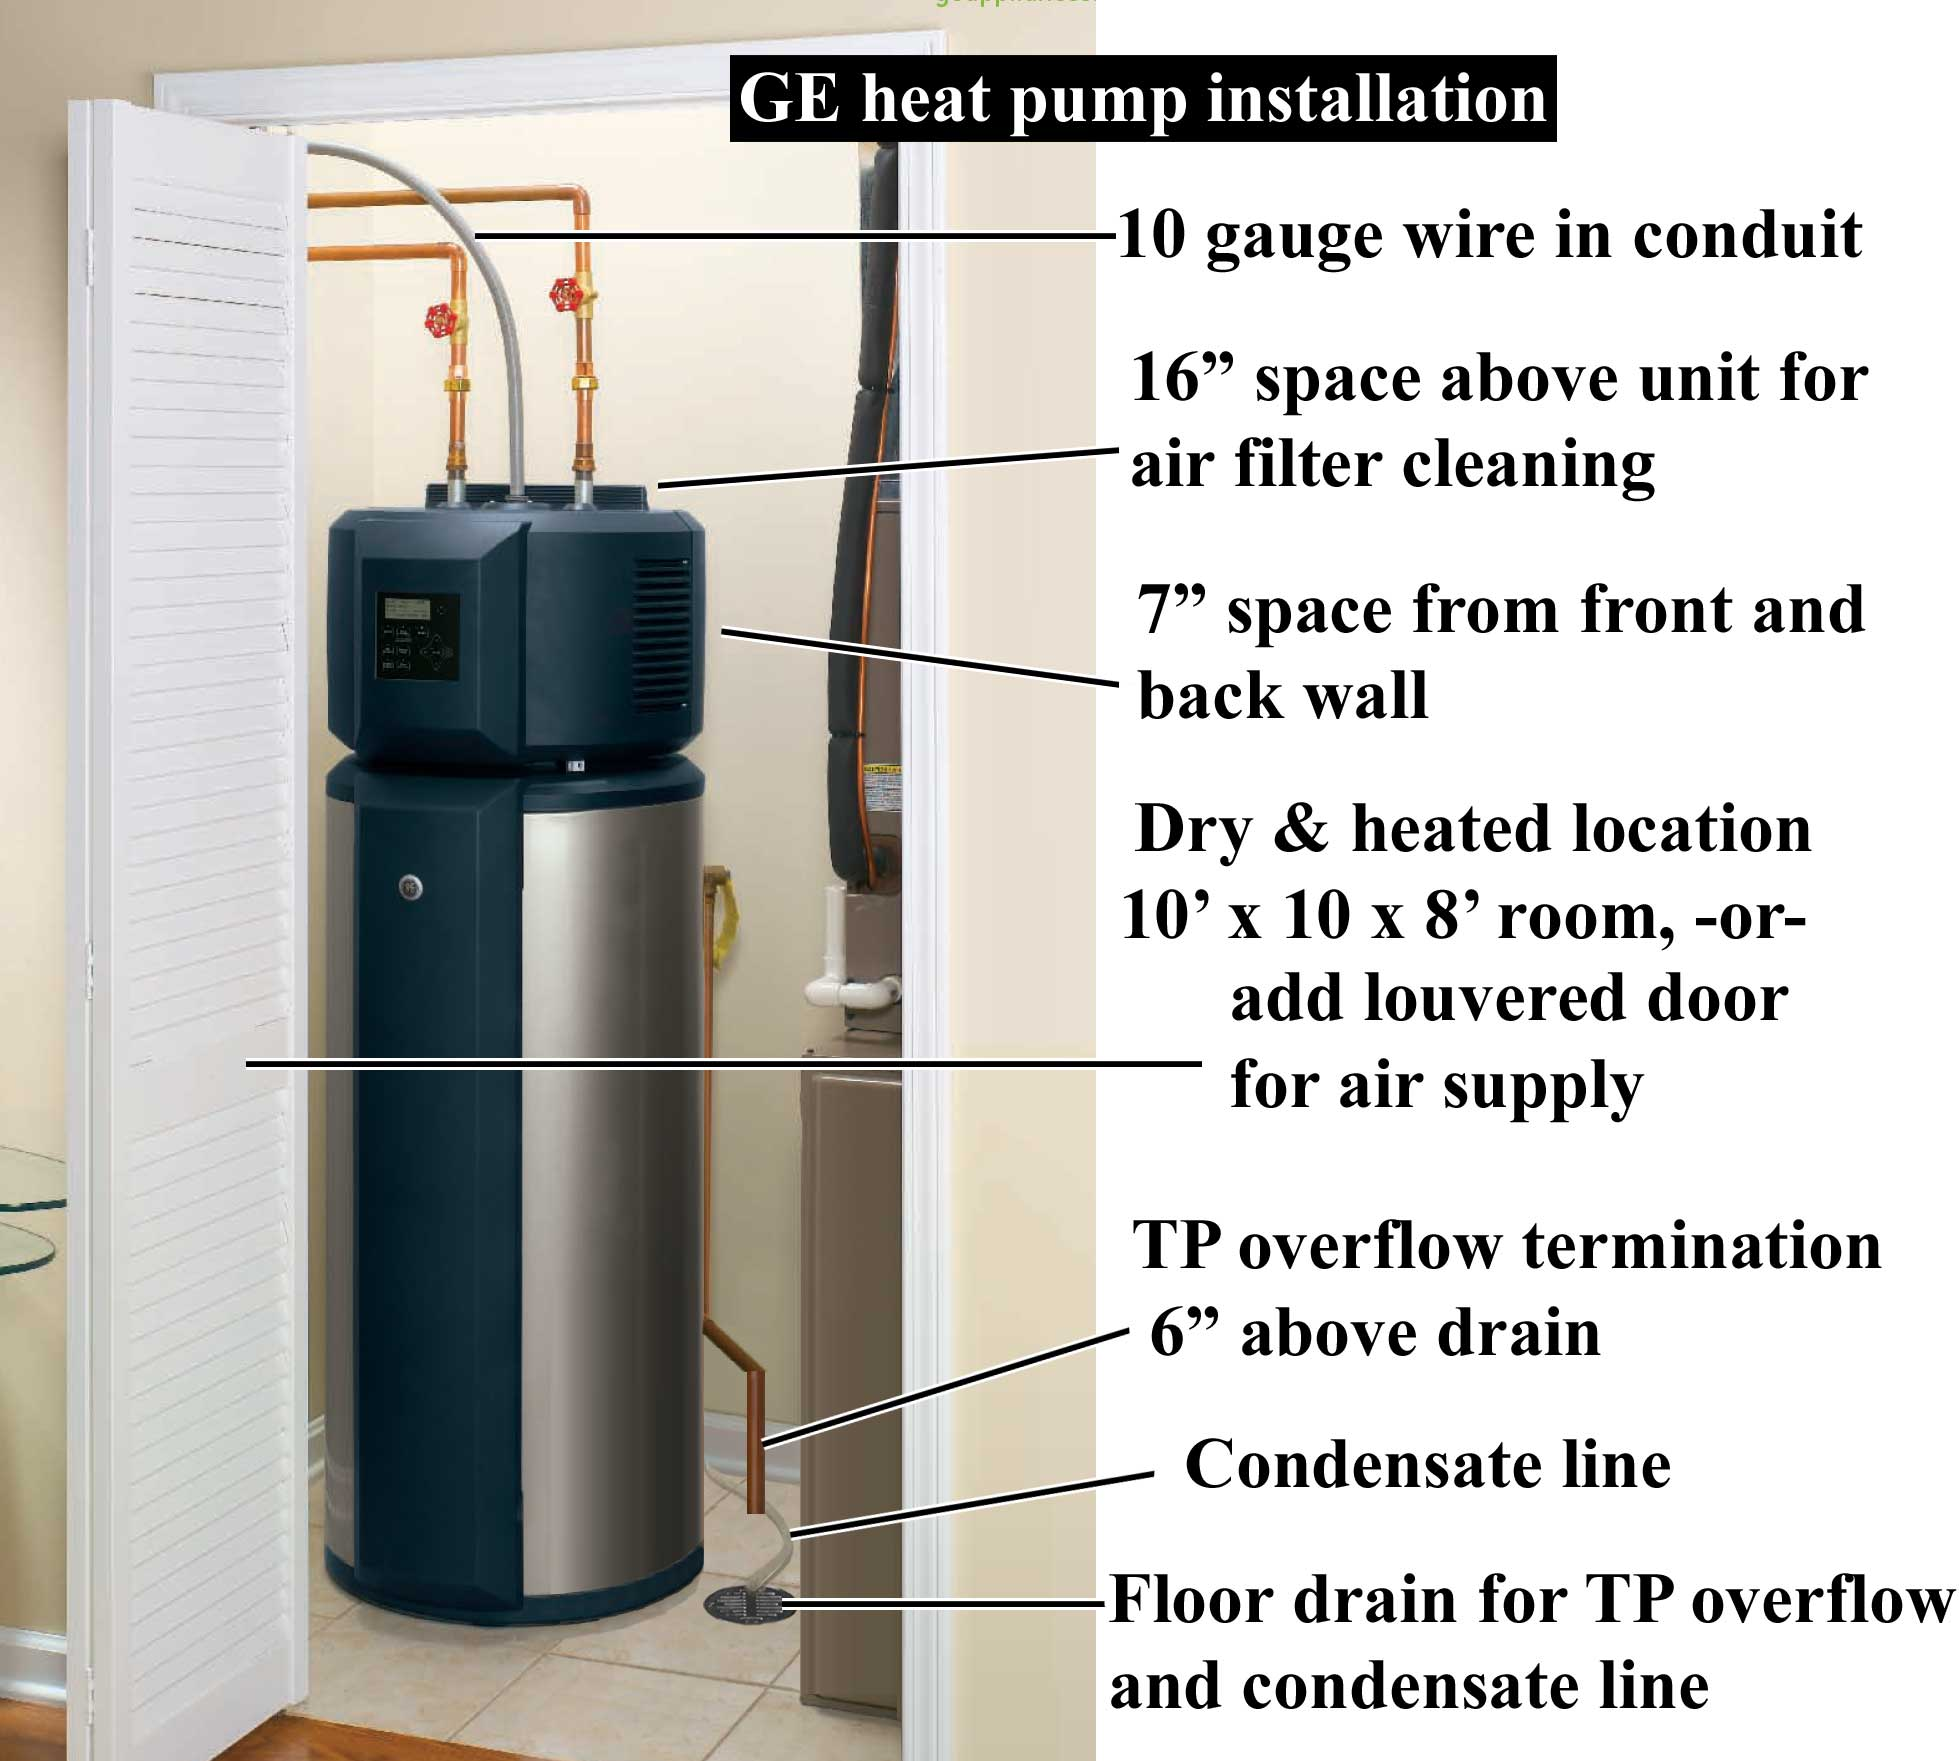 Heat pump installation 1000 review ge heat pump water heater wiring diagram for a ge water heater at fashall.co